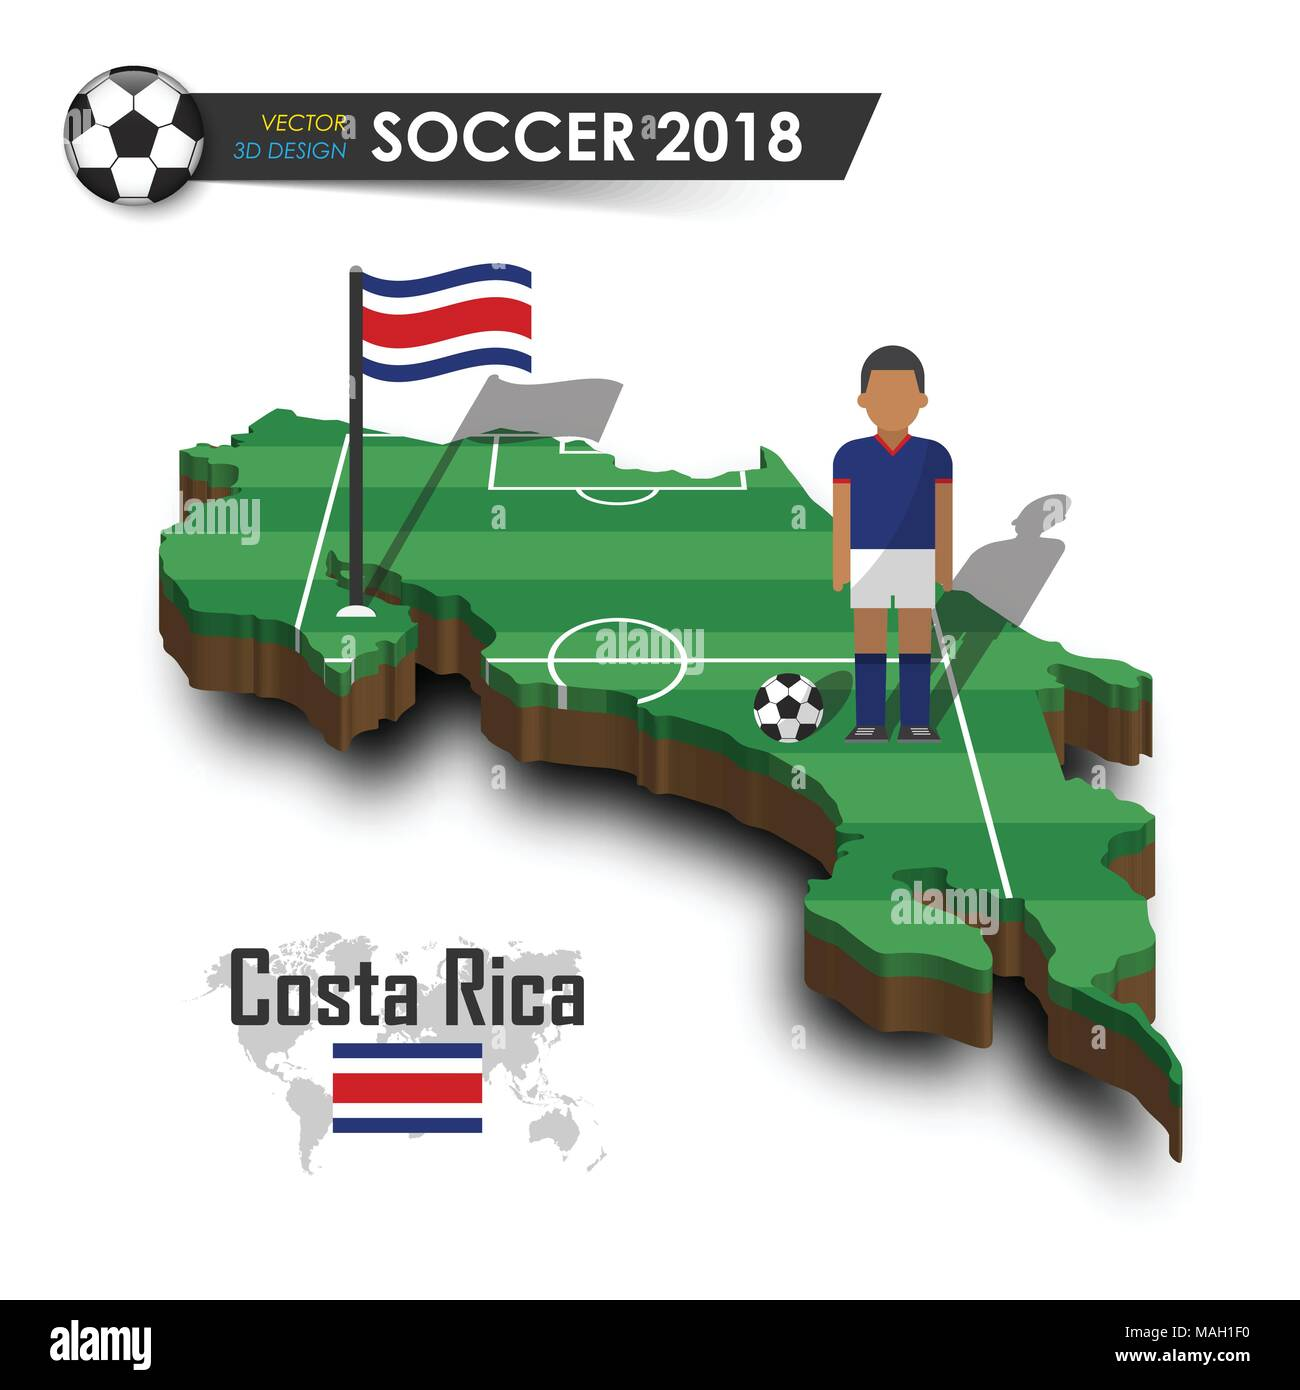 Costa rica national soccer team . Football player and flag ... on la costa golf course map, golf in china map, golf in bermuda map, golf in spain map, golf in ireland map, golf in liberia costa rica, golf in jamaica map, golf in guanacaste costa rica, golf courses costa rica map, golf in scotland map,